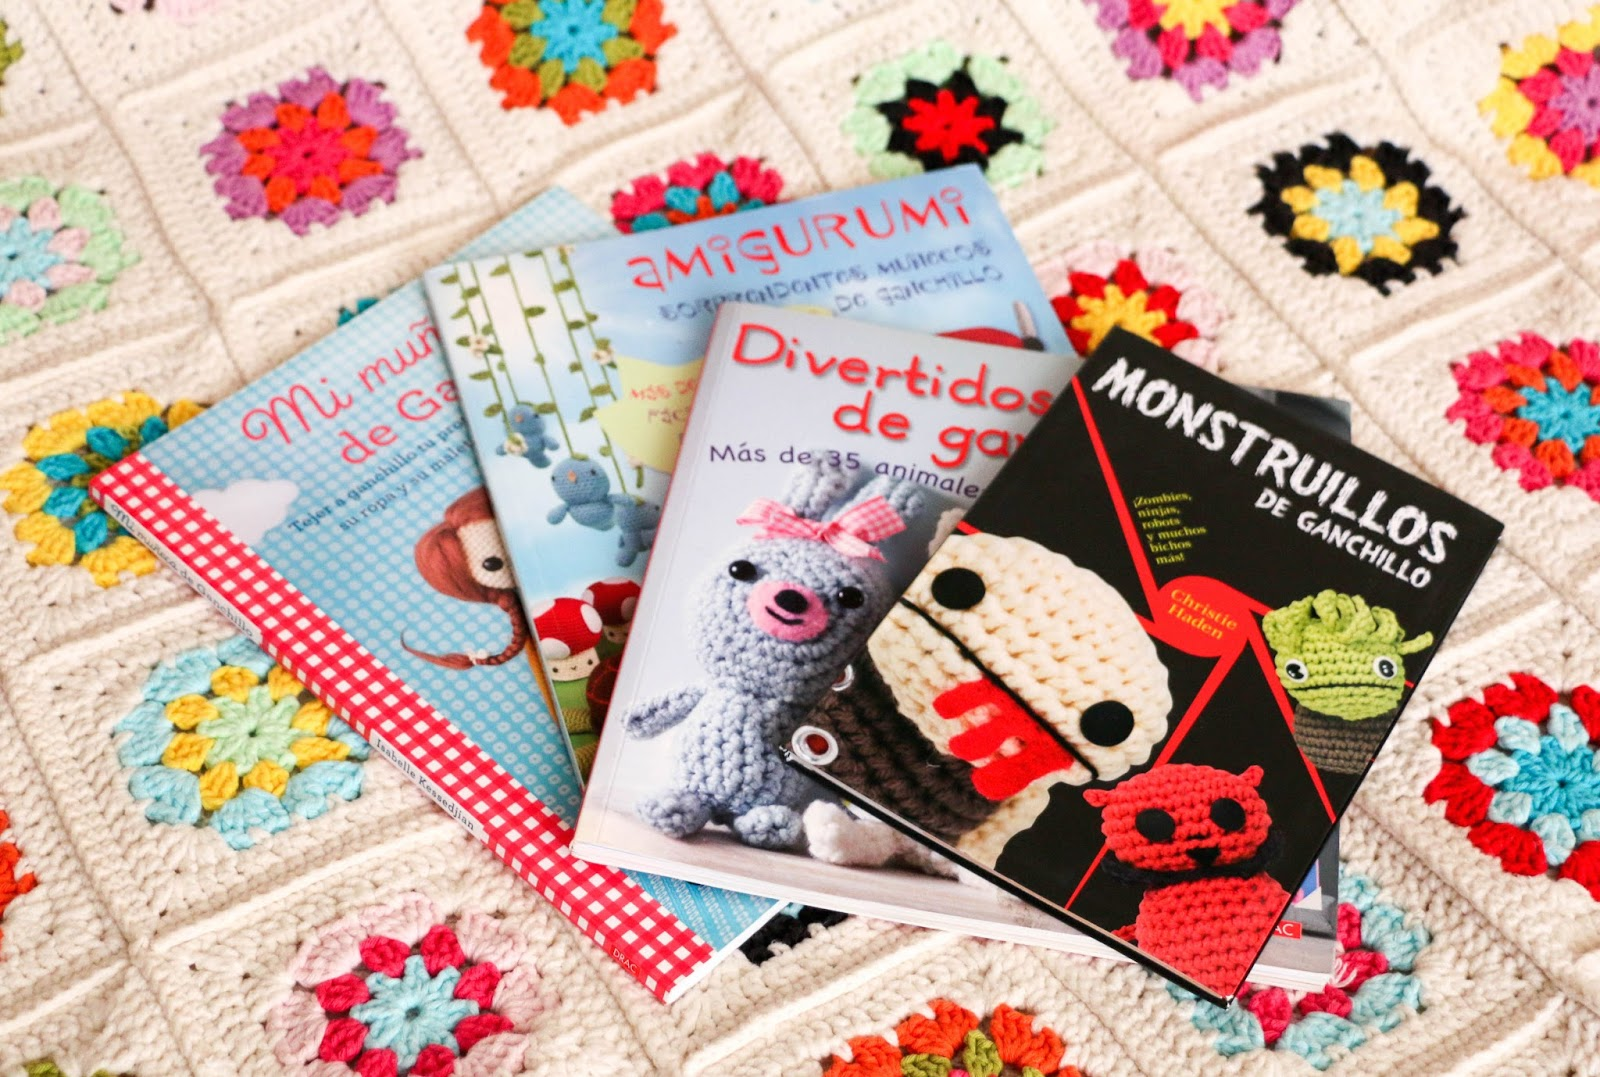 Libros De Ganchillo Bookworm I Amigurumi The Crochet Factor